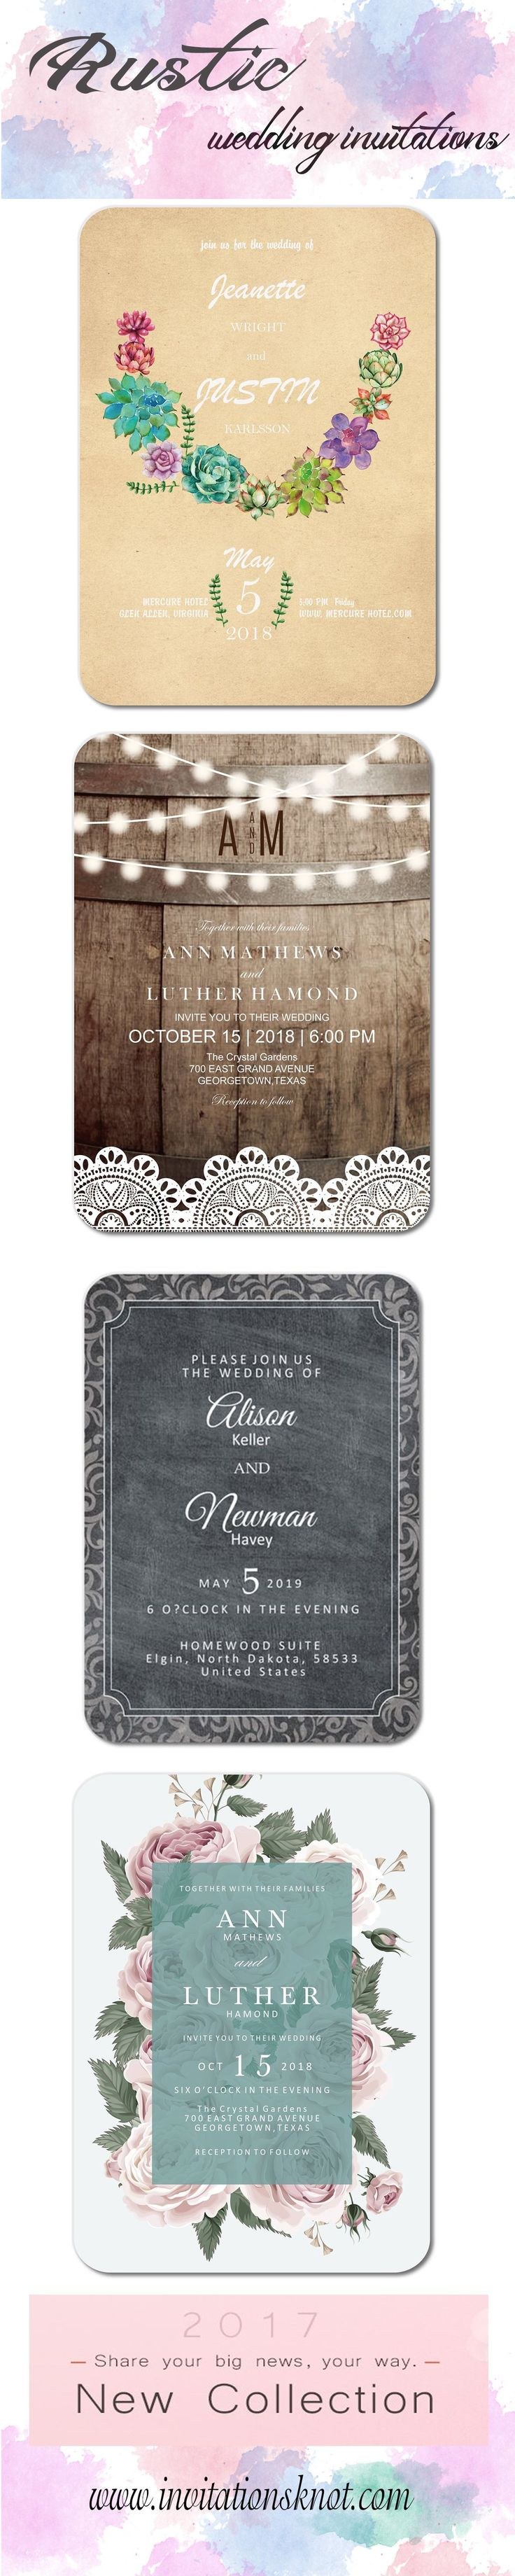 diy wedding invitations for second marriage%0A Rustic wedding invitations   wedding ideas unique  wedding invitations diy   wedding ideas on